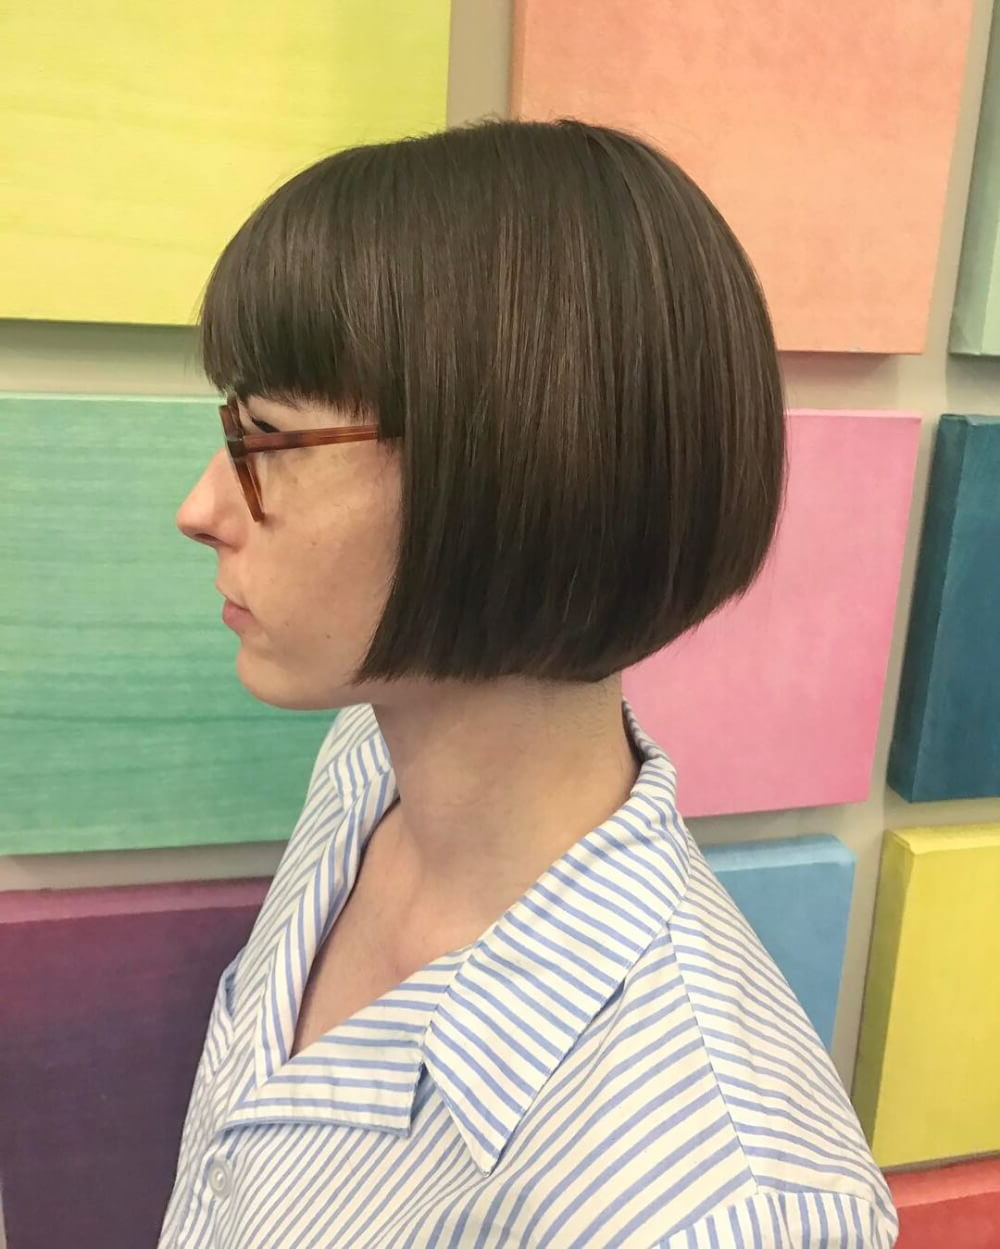 50 Chic Short Bob Hairstyles & Haircuts For Women In 2019 Inside Layered Short Bob Haircuts (View 18 of 20)